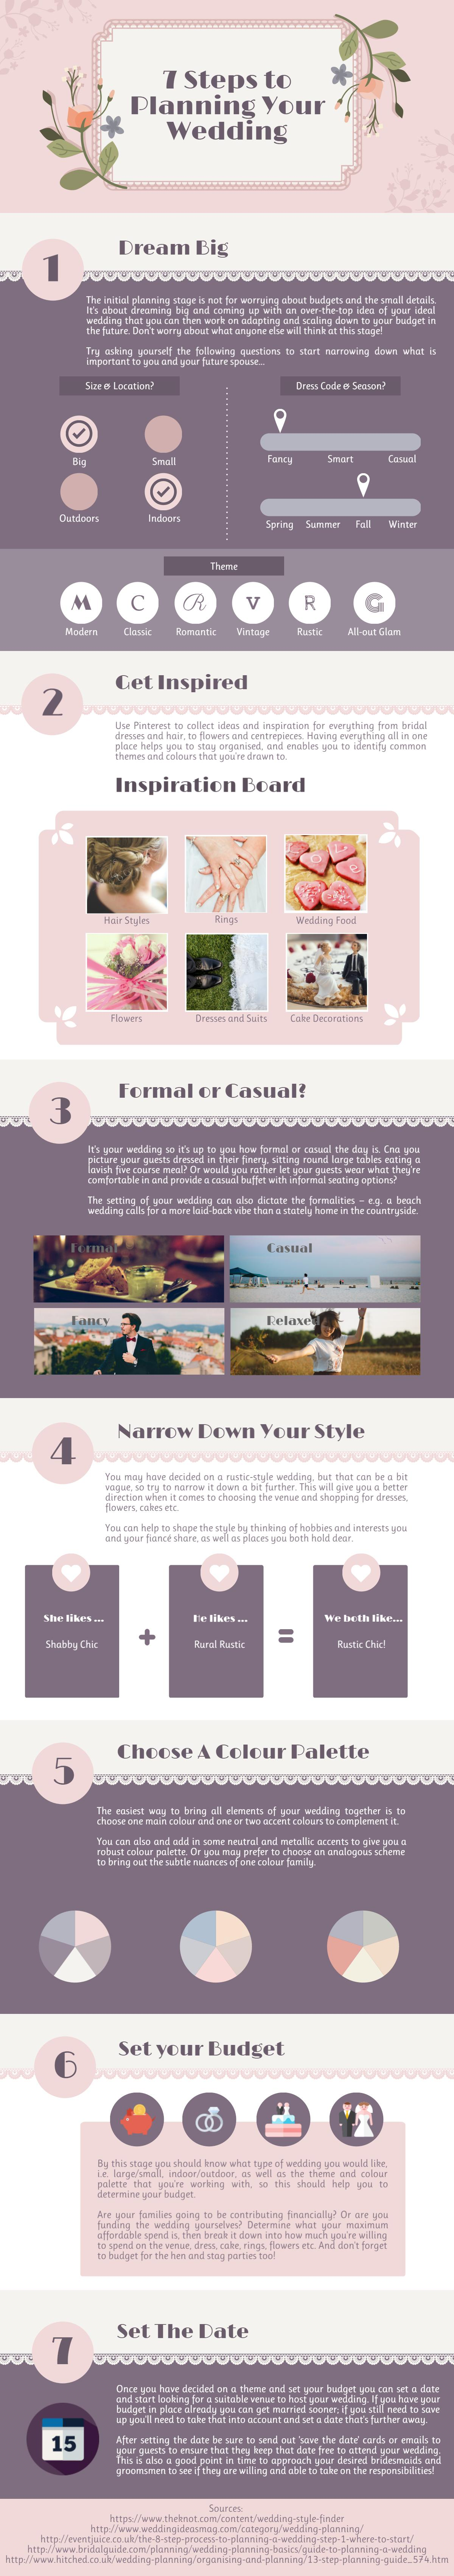 7 Steps To Planning Your Wedding